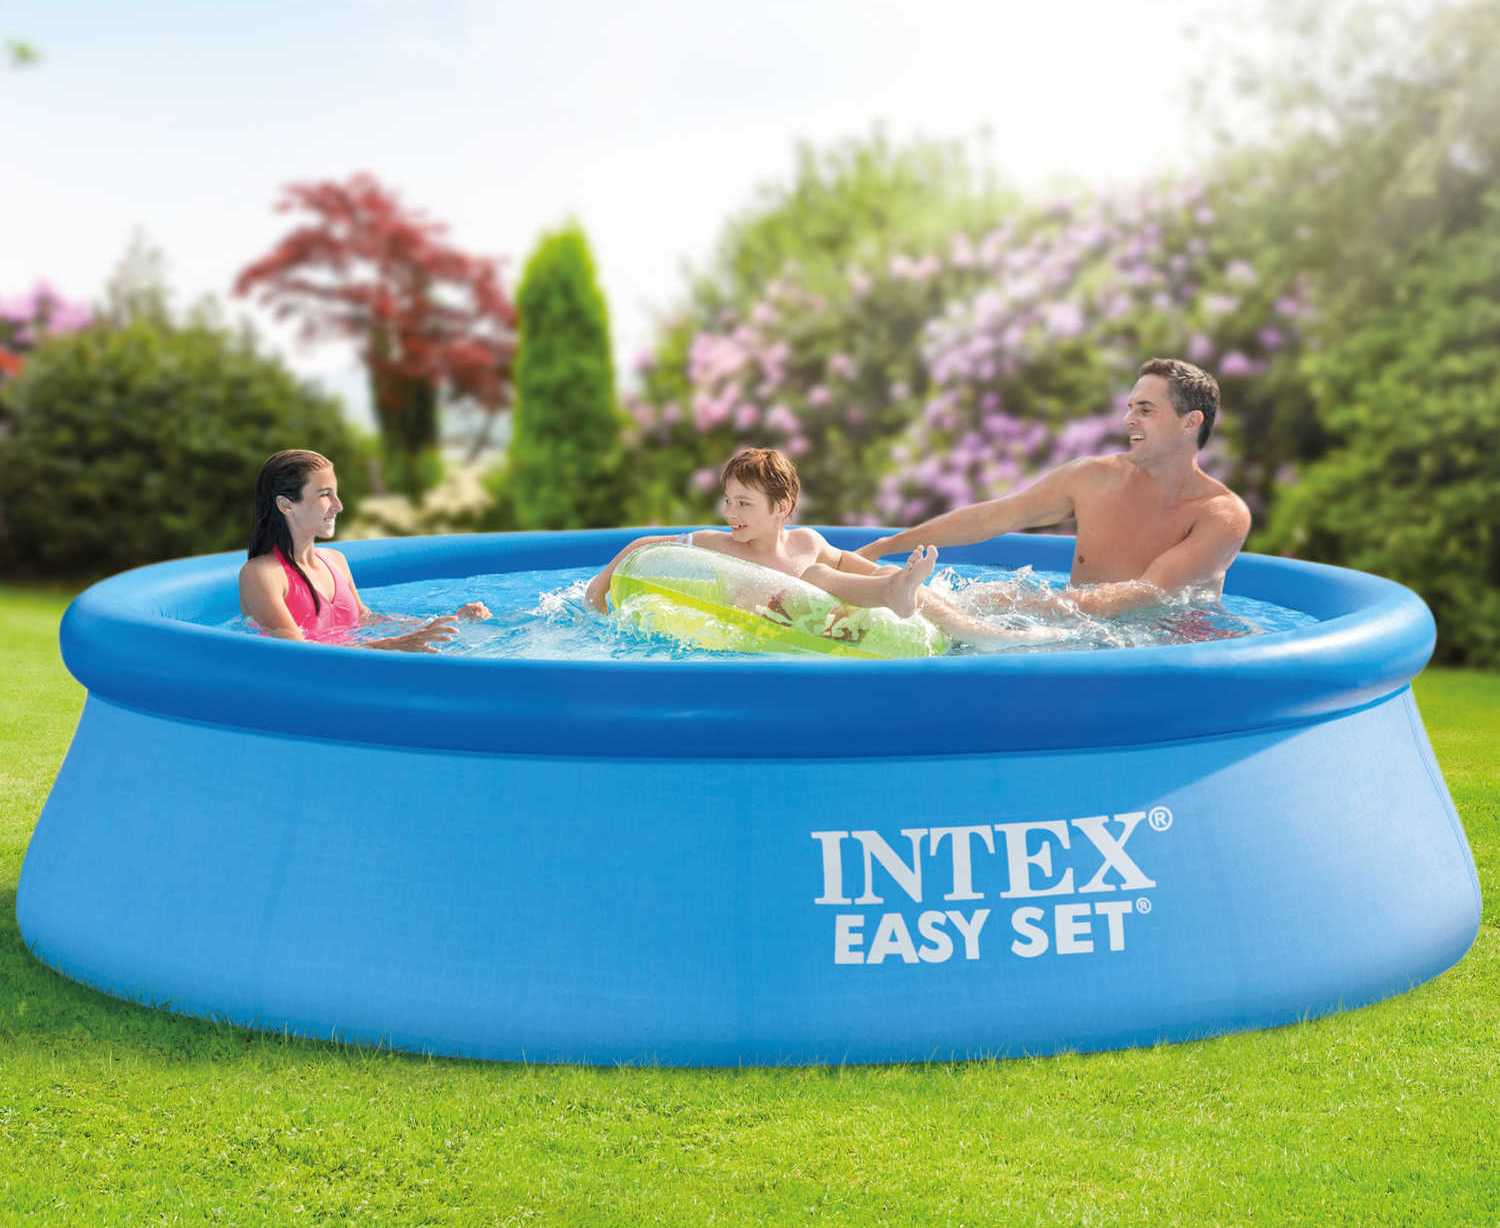 Aldi Intex Pool Aldi Slashes Price Of 30 10ft Paddling Pool To Just 10